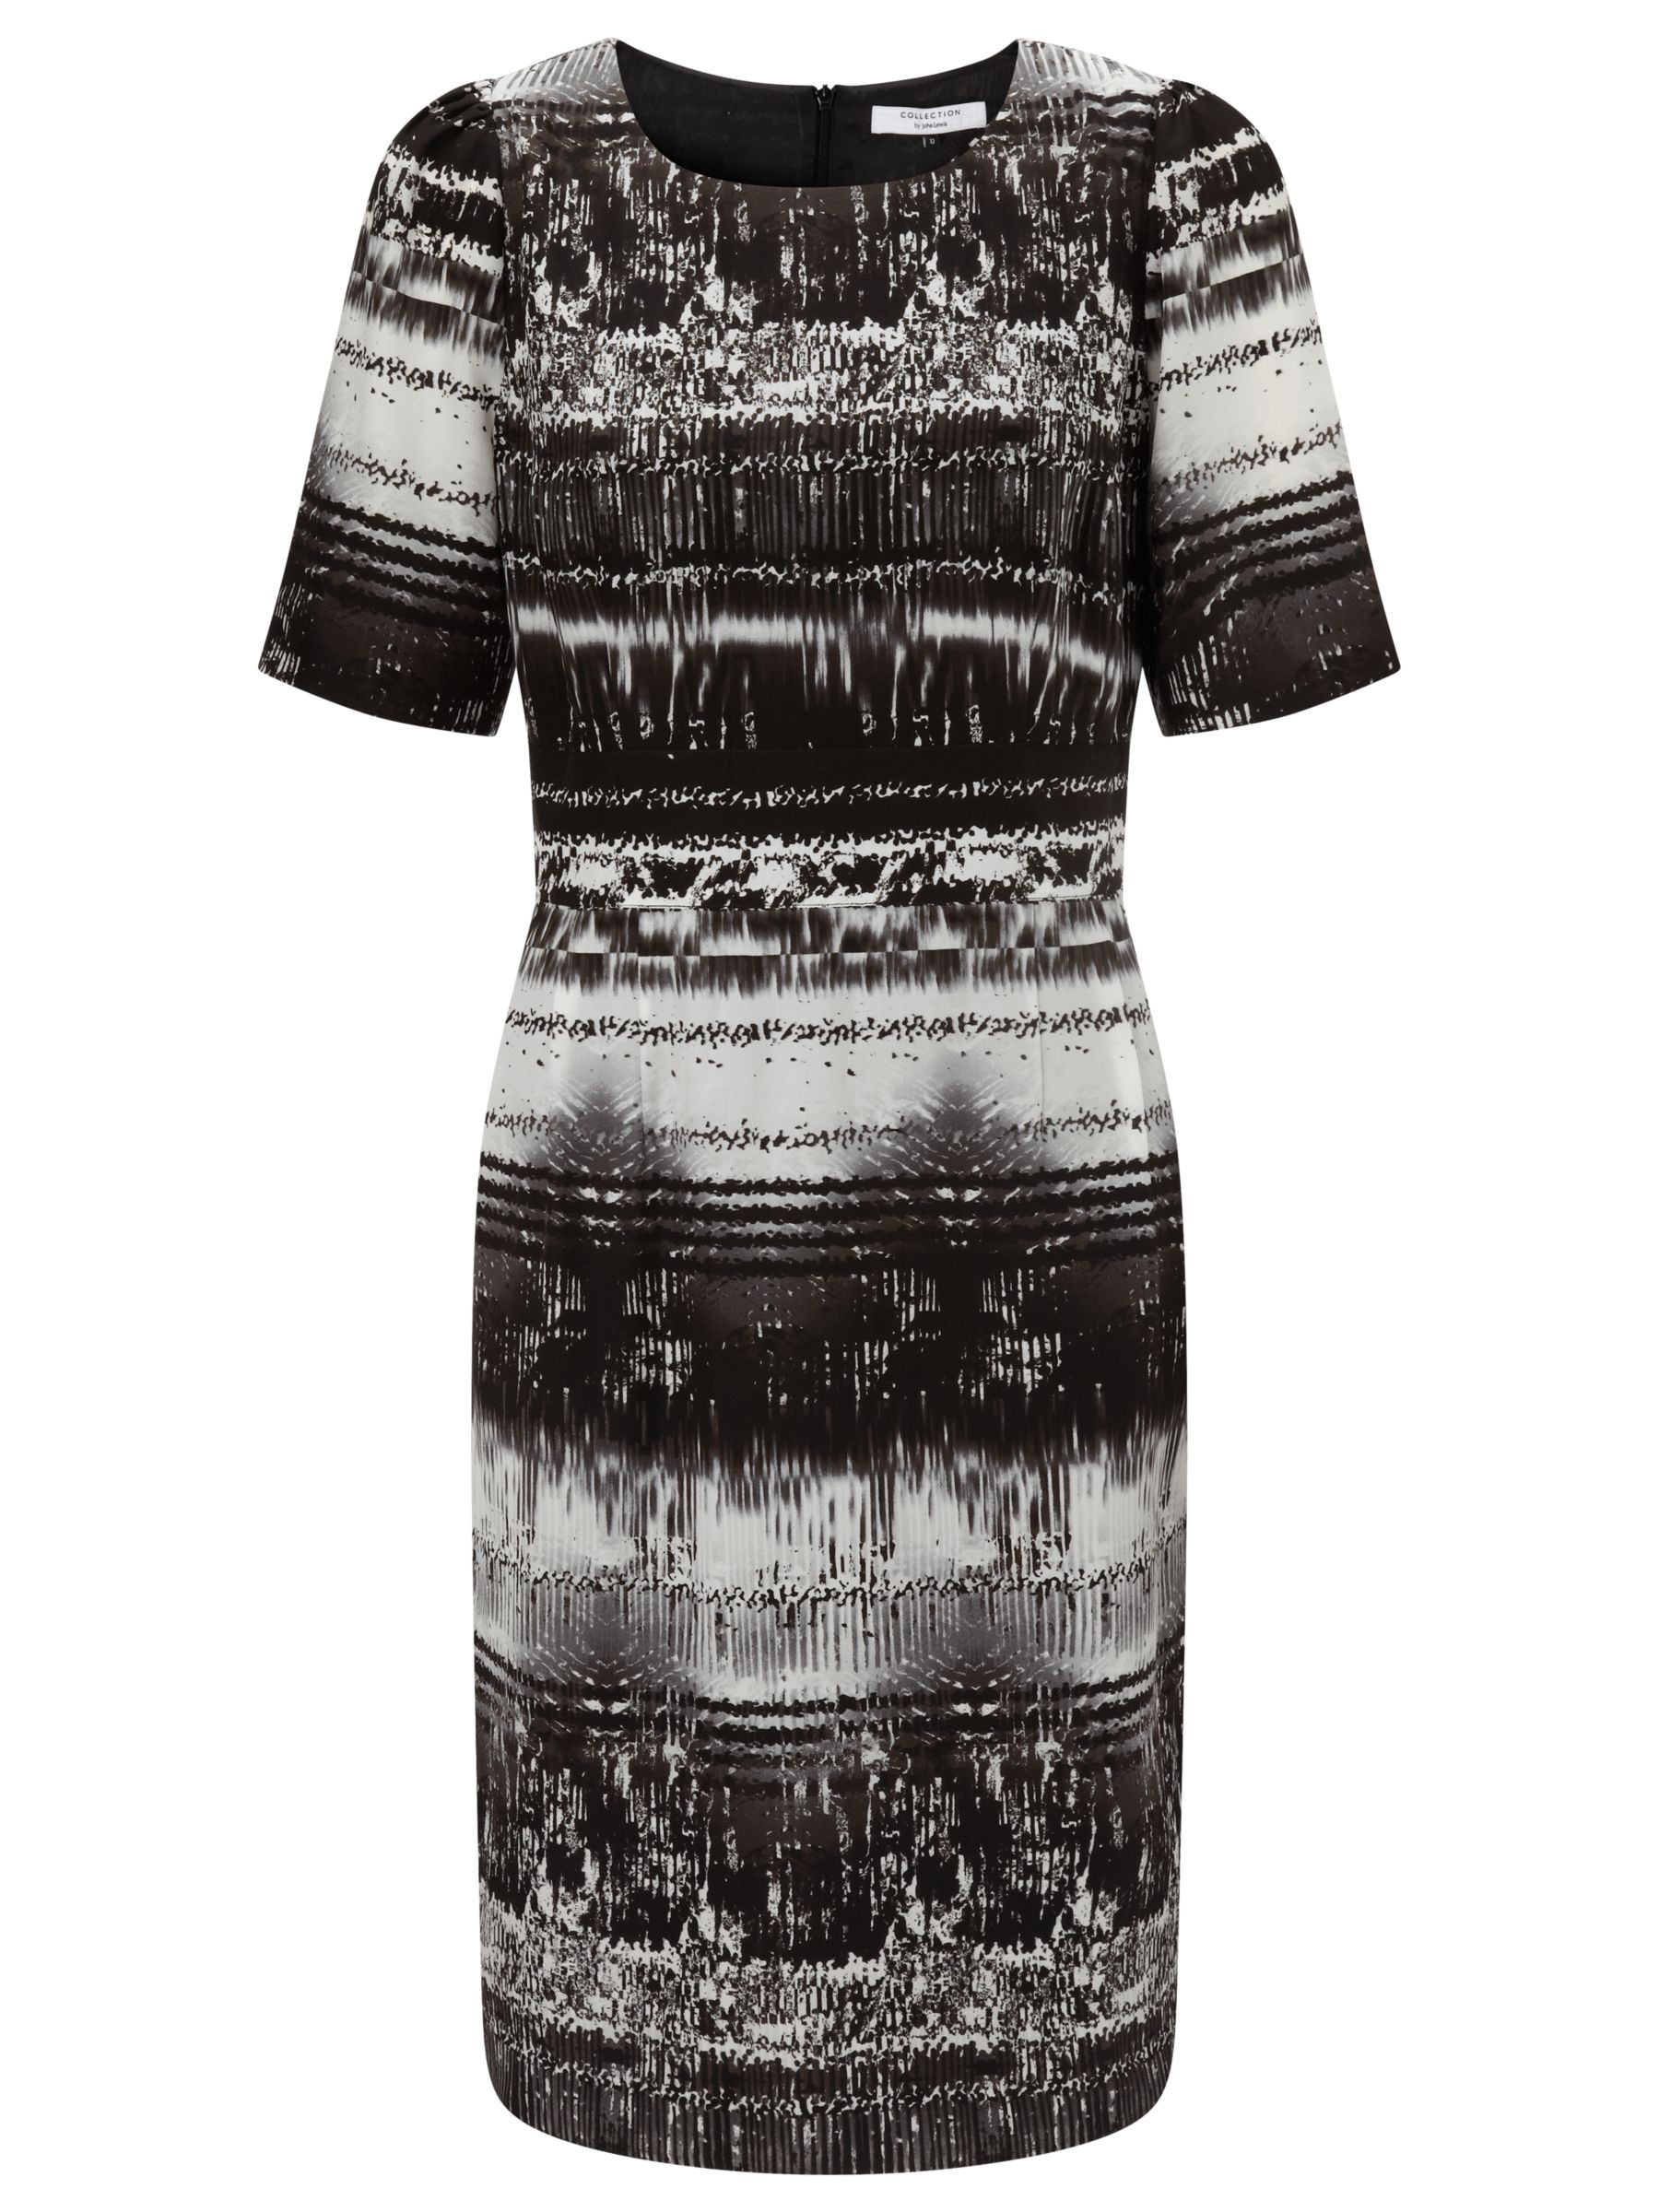 collection by john lewis ombre print silk dress multi, collection, john, lewis, ombre, print, silk, dress, multi, collection by john lewis, 14|10|18|12|16|8, women, womens dresses, fashion magazine, brands a-k, edition magazine, workwear, 1509534